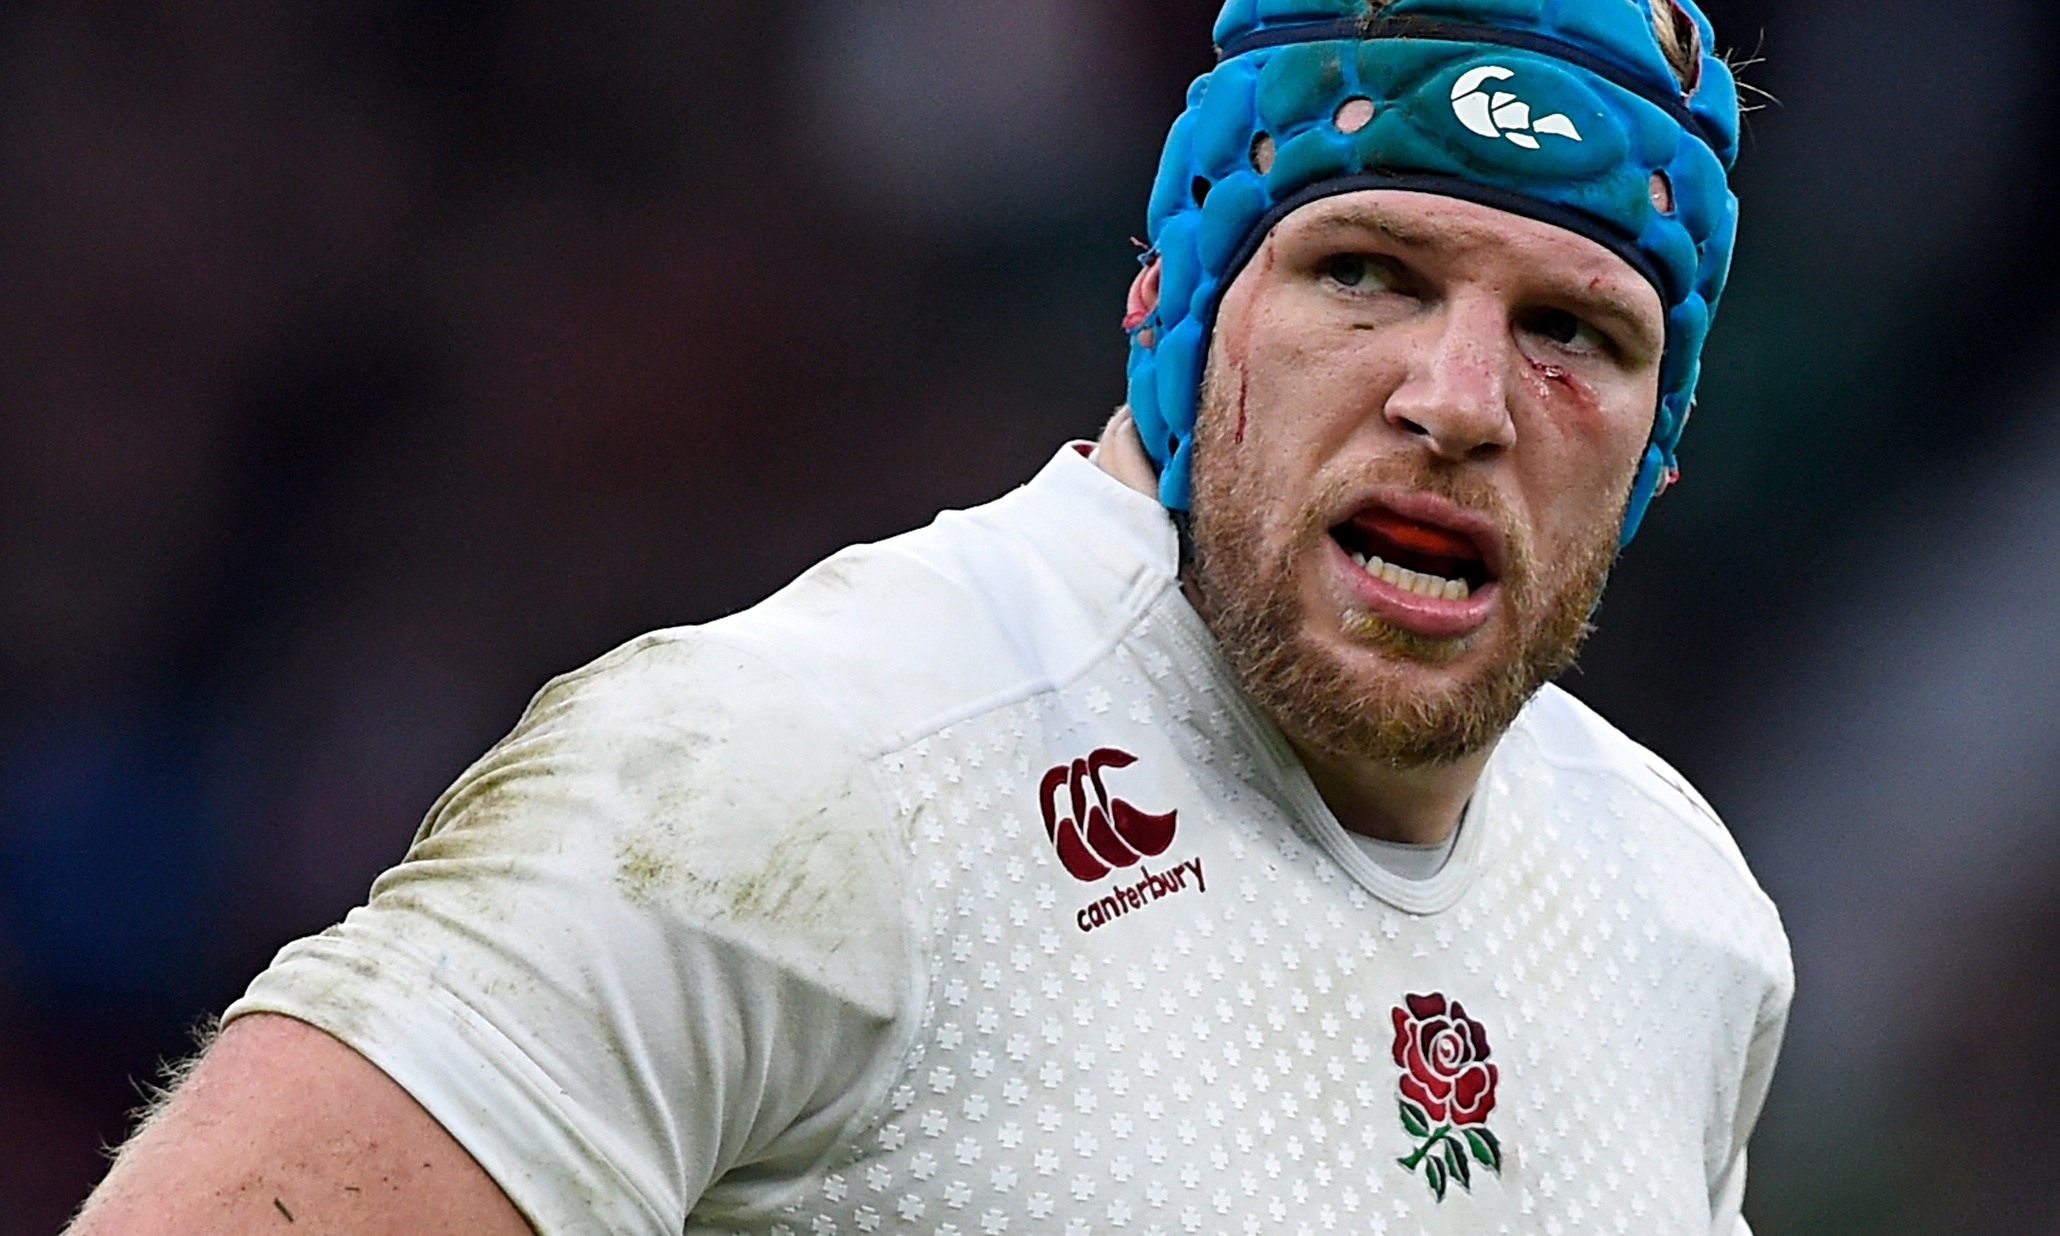 james haskell - photo #1